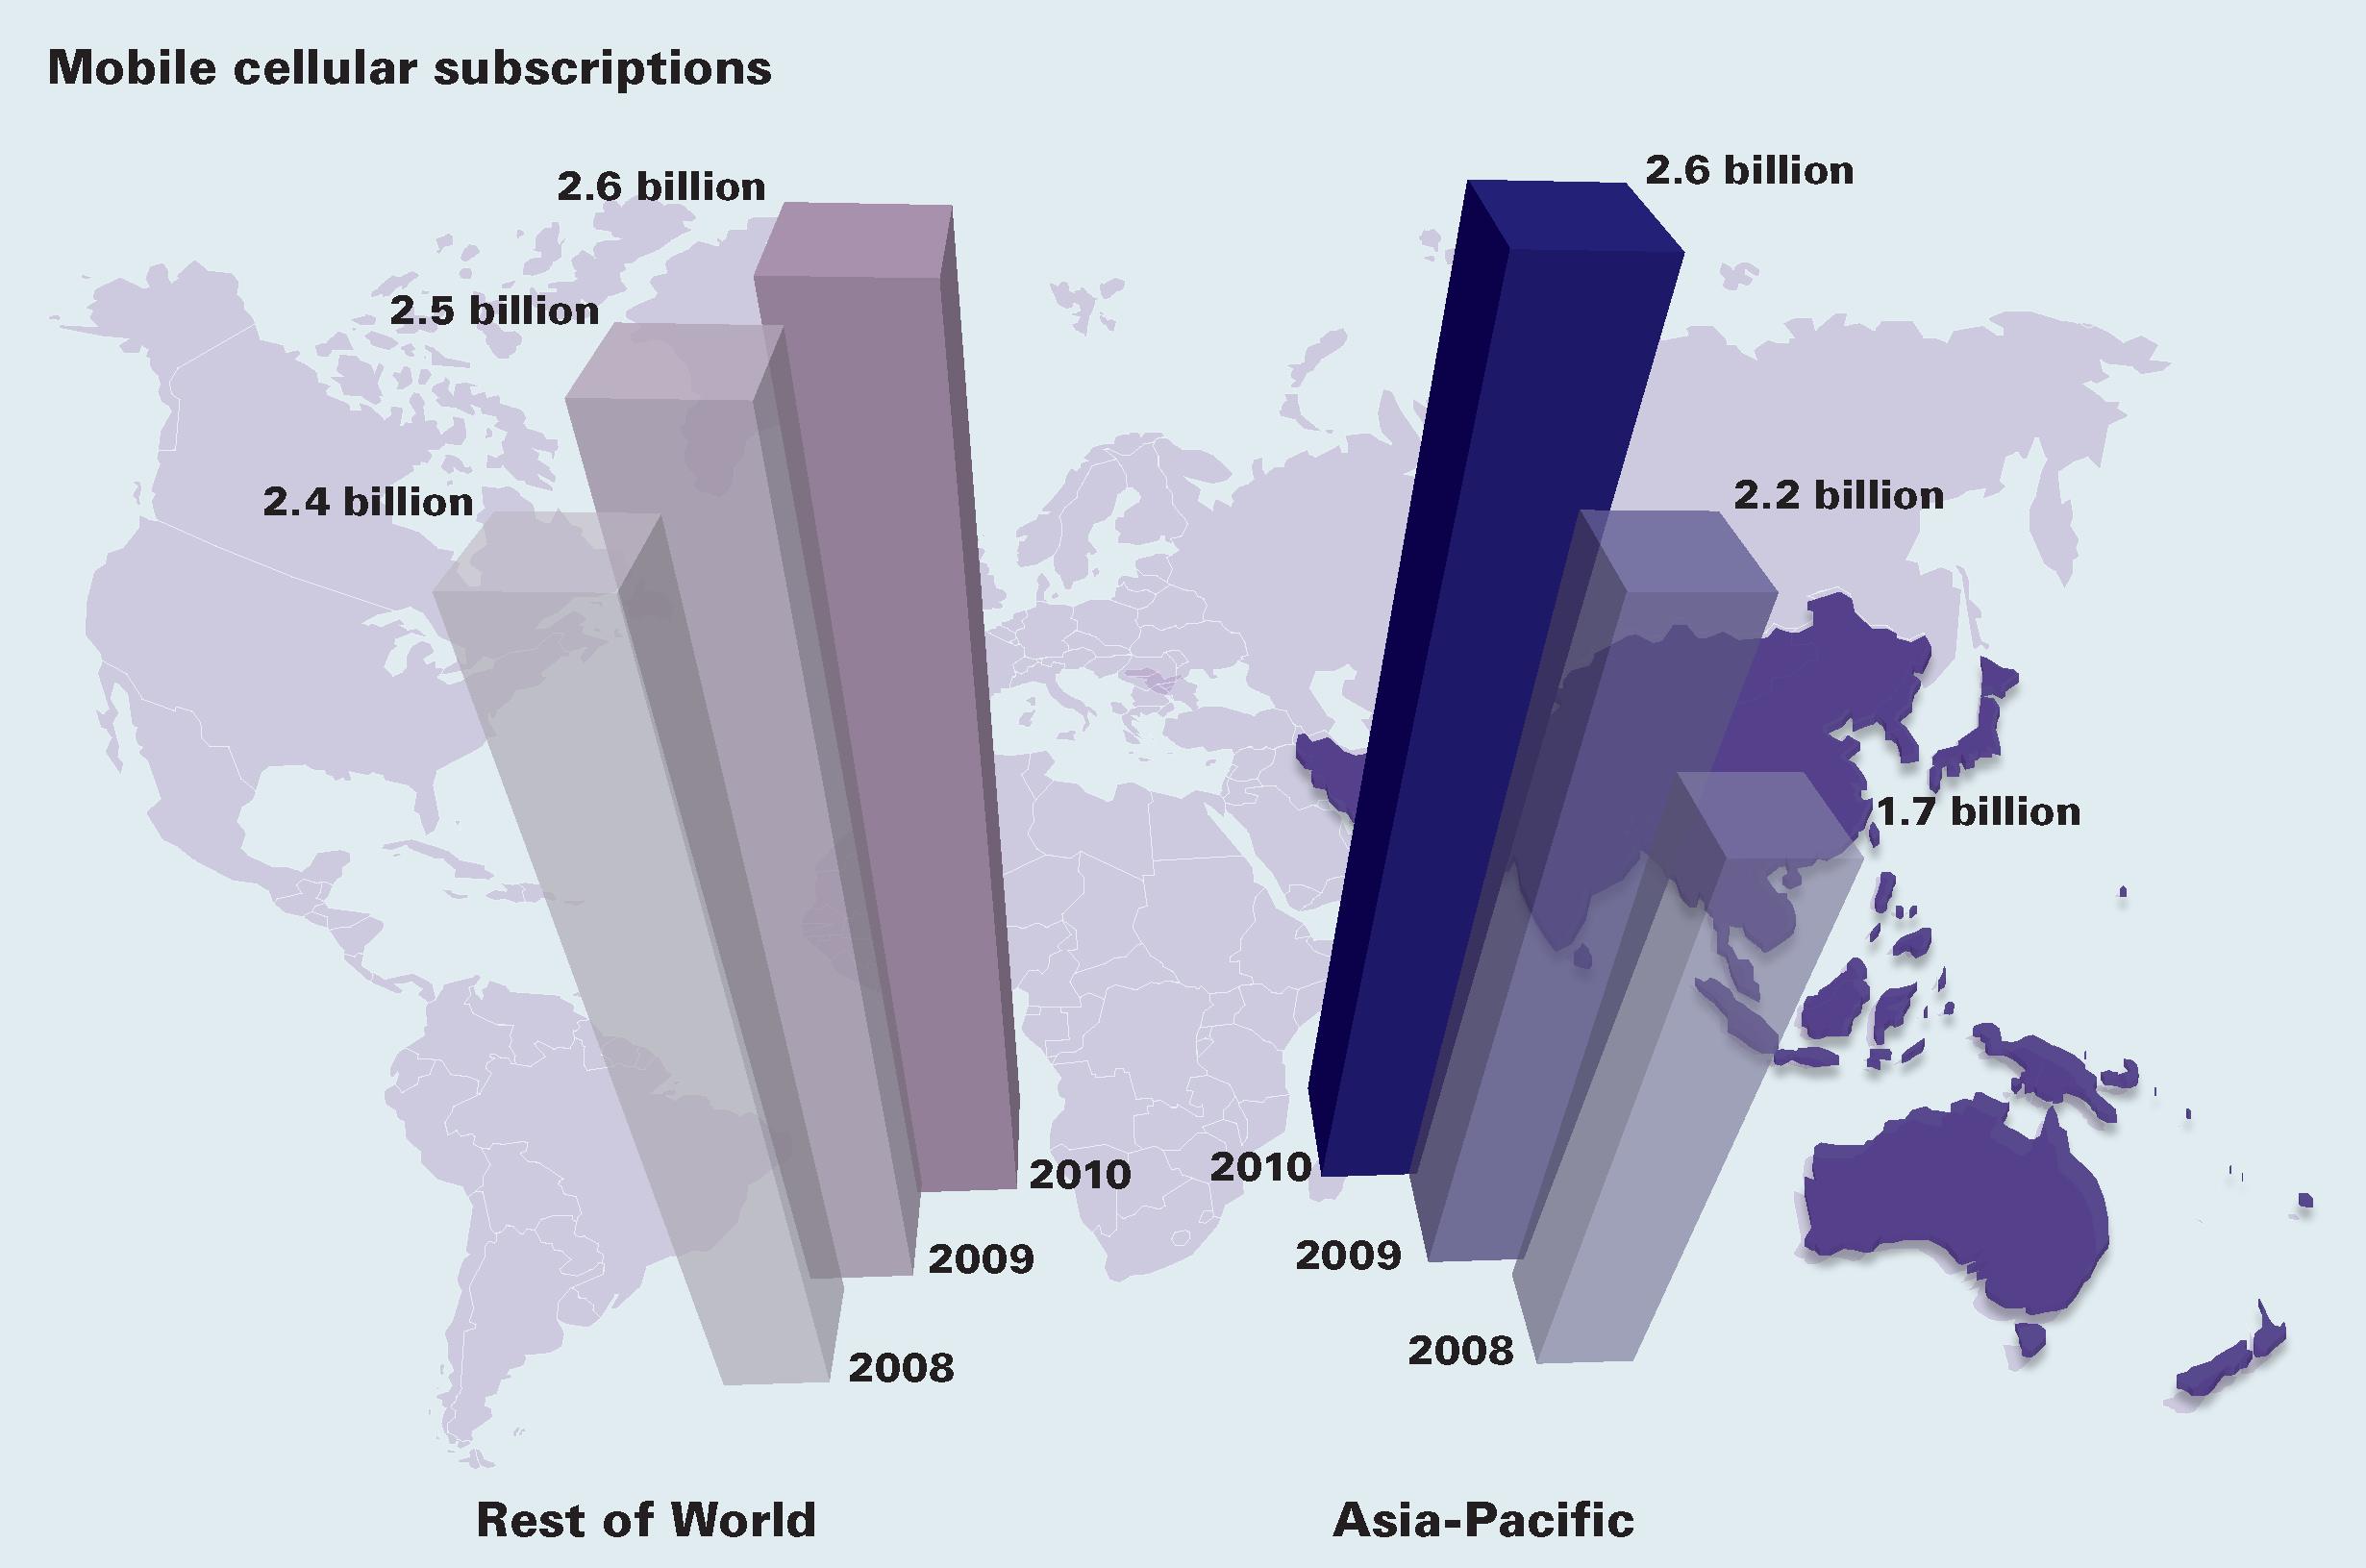 Cellularsubscriptions